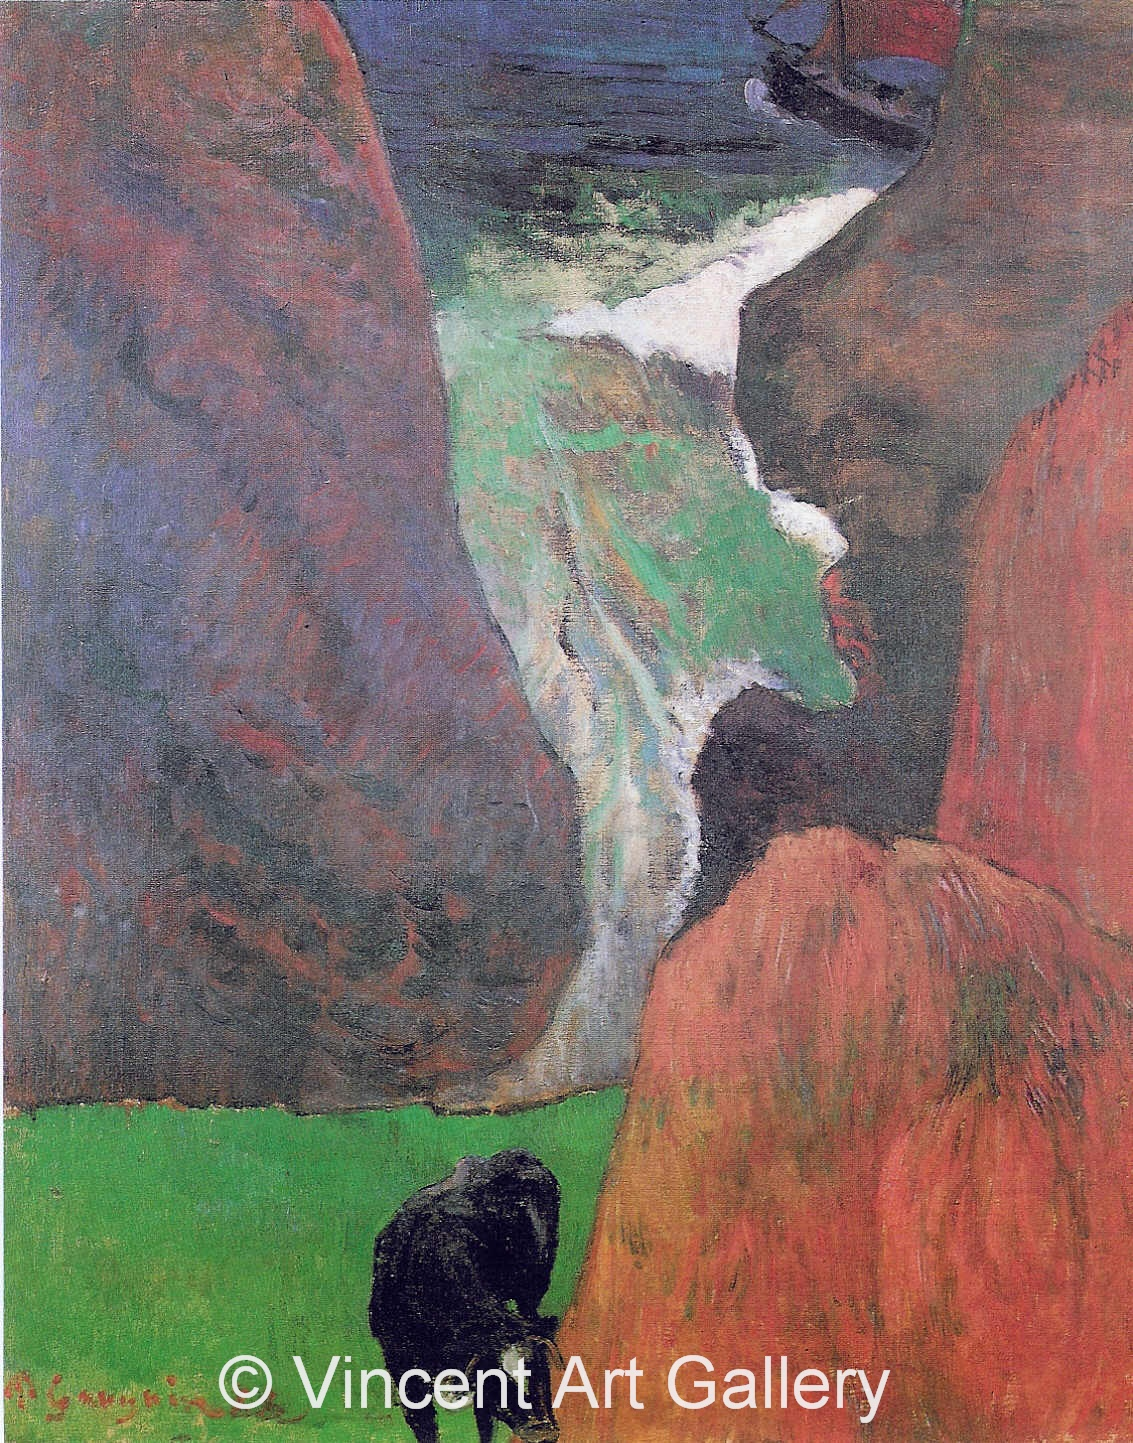 A3606, GAUGUIN, Seascape with a Cow on the Edge of a Cliff,